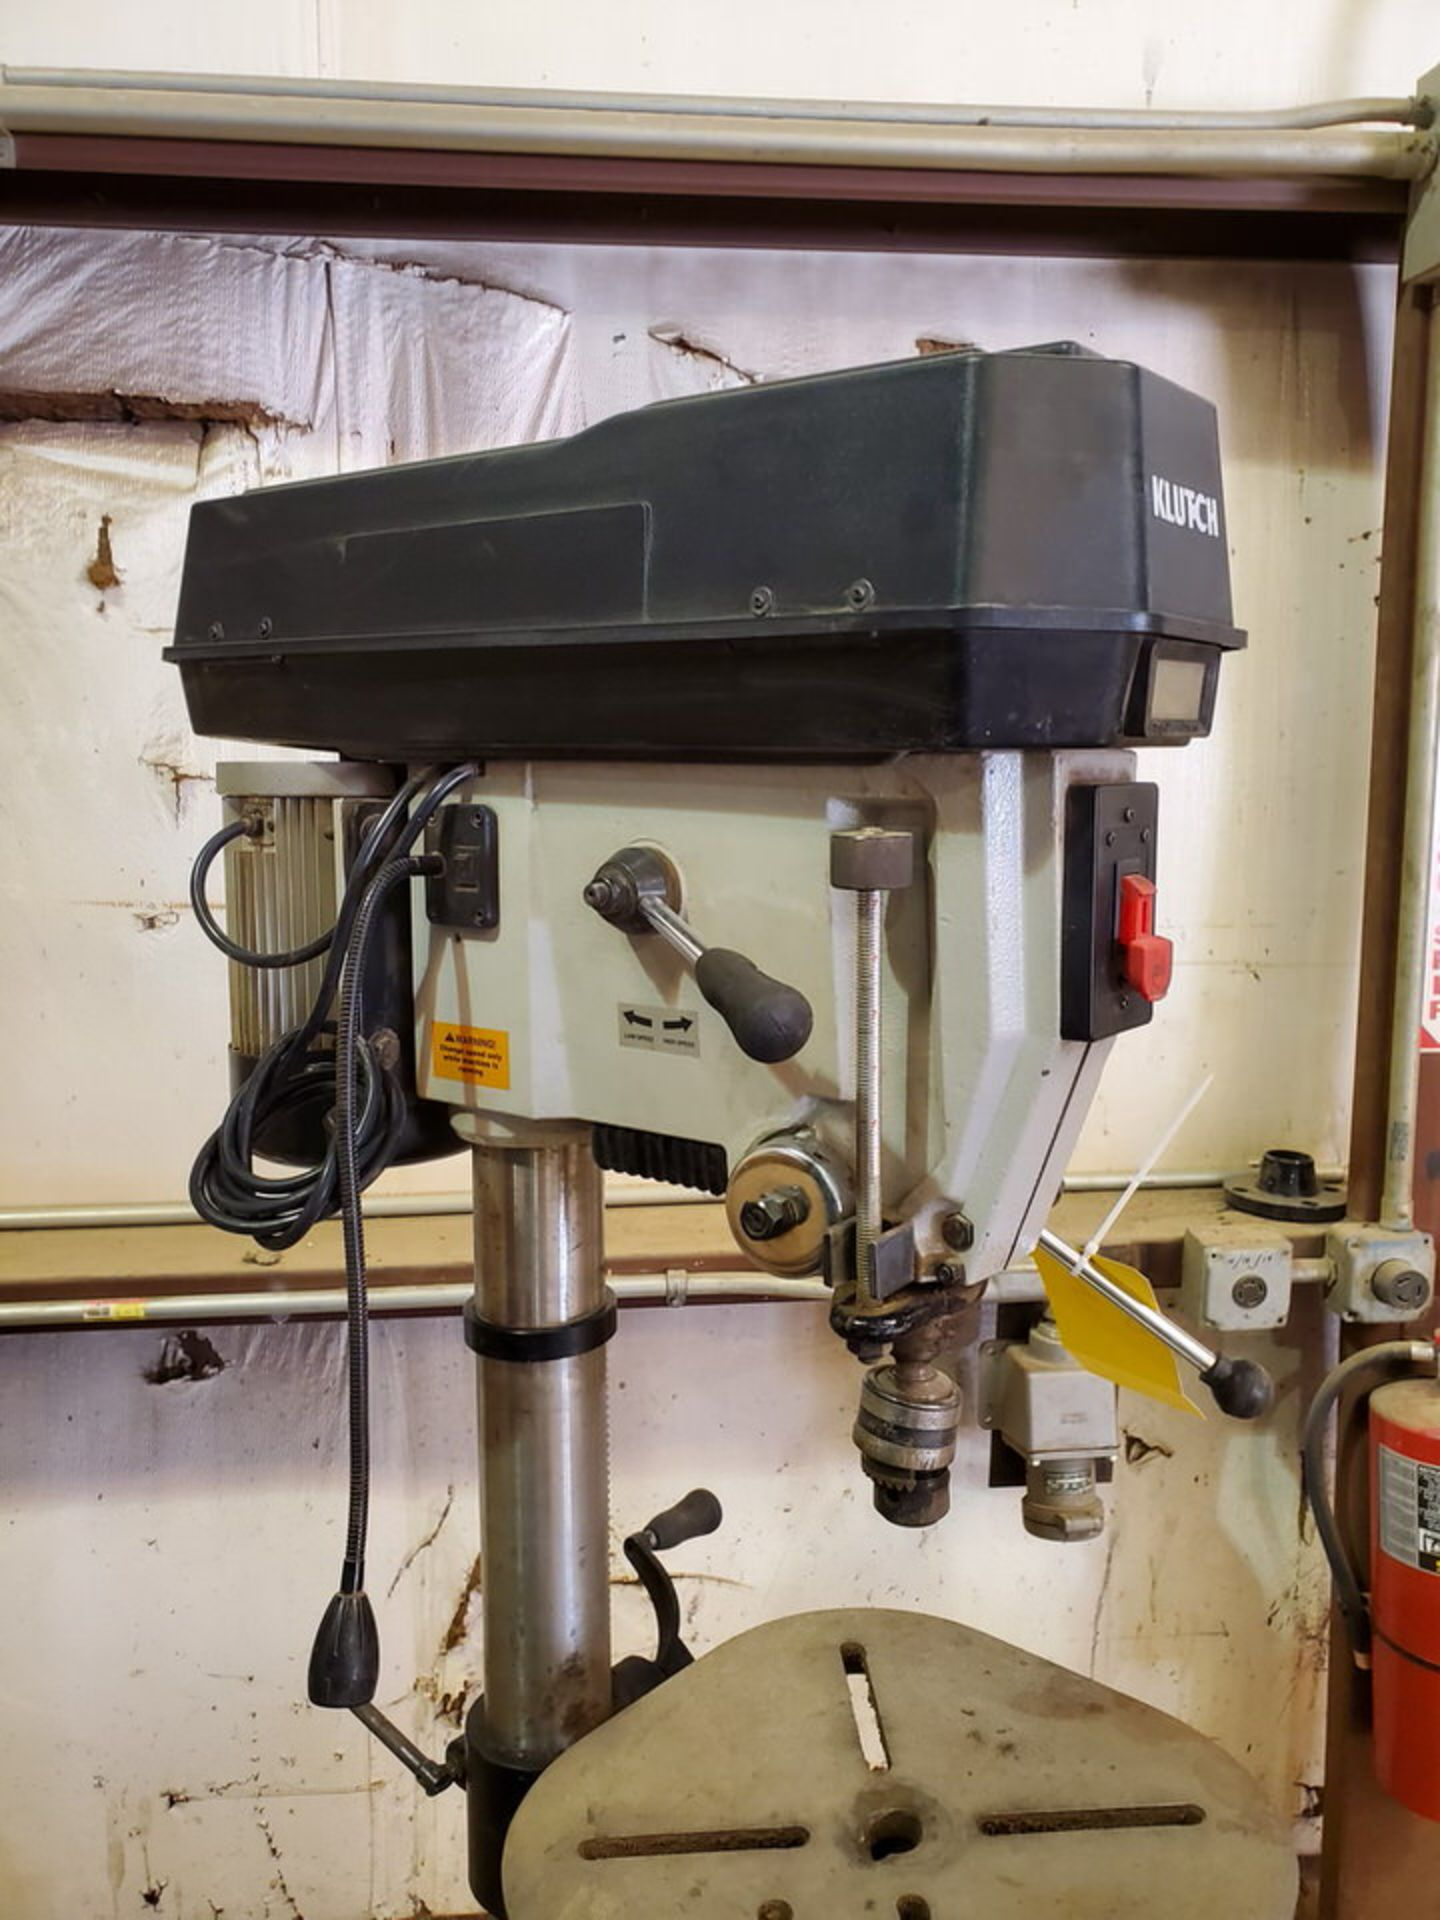 "Klutch 17"" Drill Press 120V, 60HZ,1-1/2""HP, Swing: 17-23/32"", 600-2400RPM, 6""-Travel; 14"" Dia Work - Image 5 of 9"